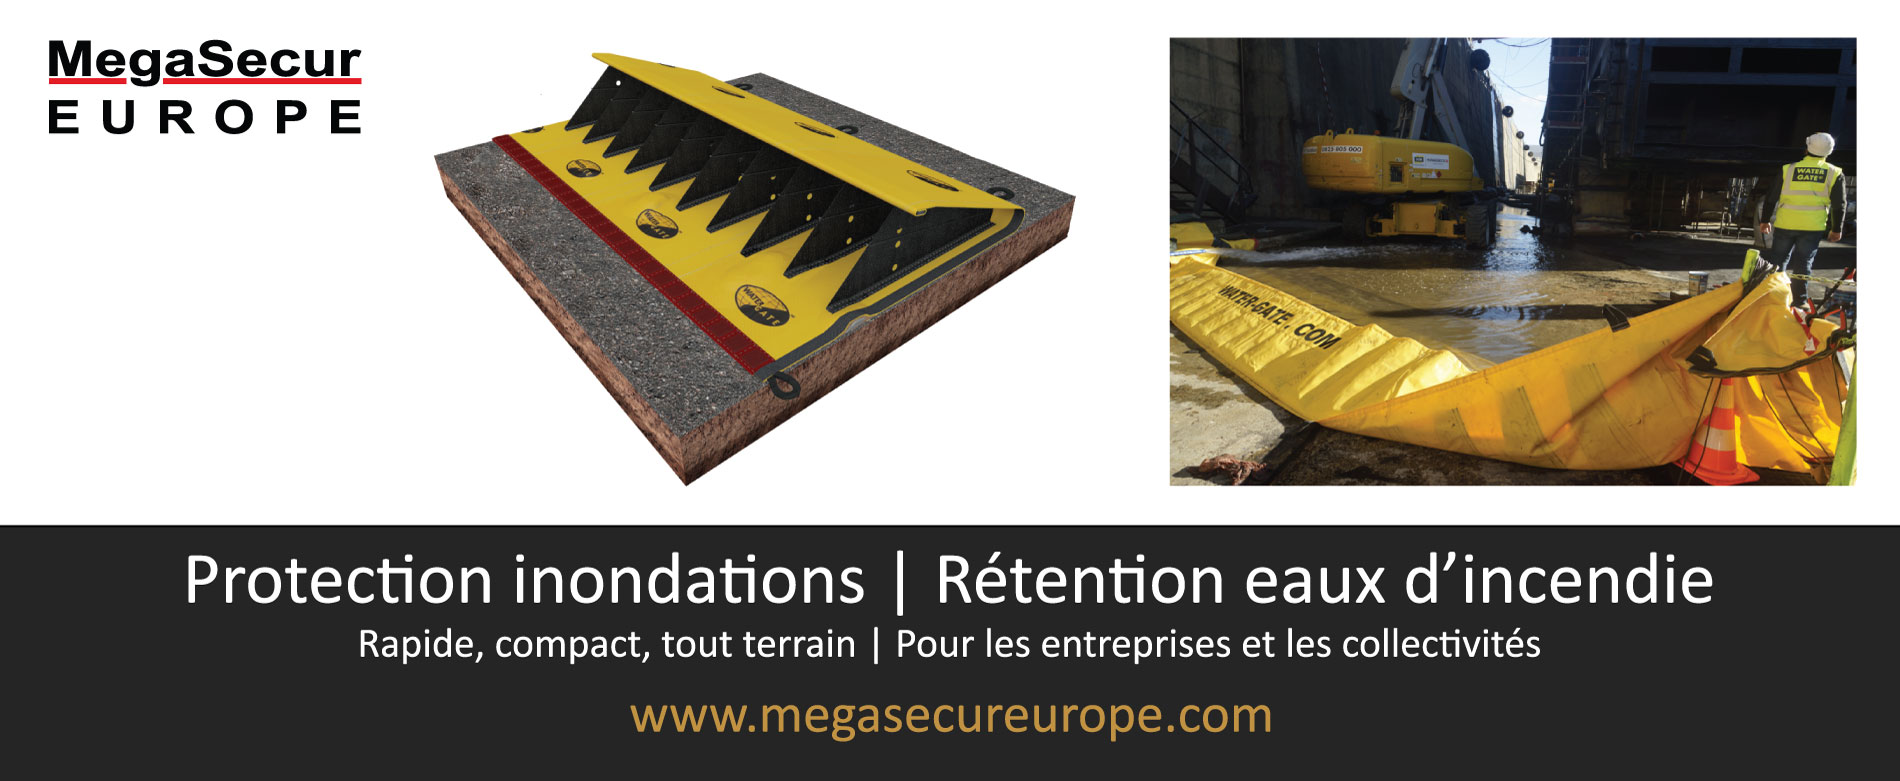 MegaSecur Europe Water-Gate pub Les echos